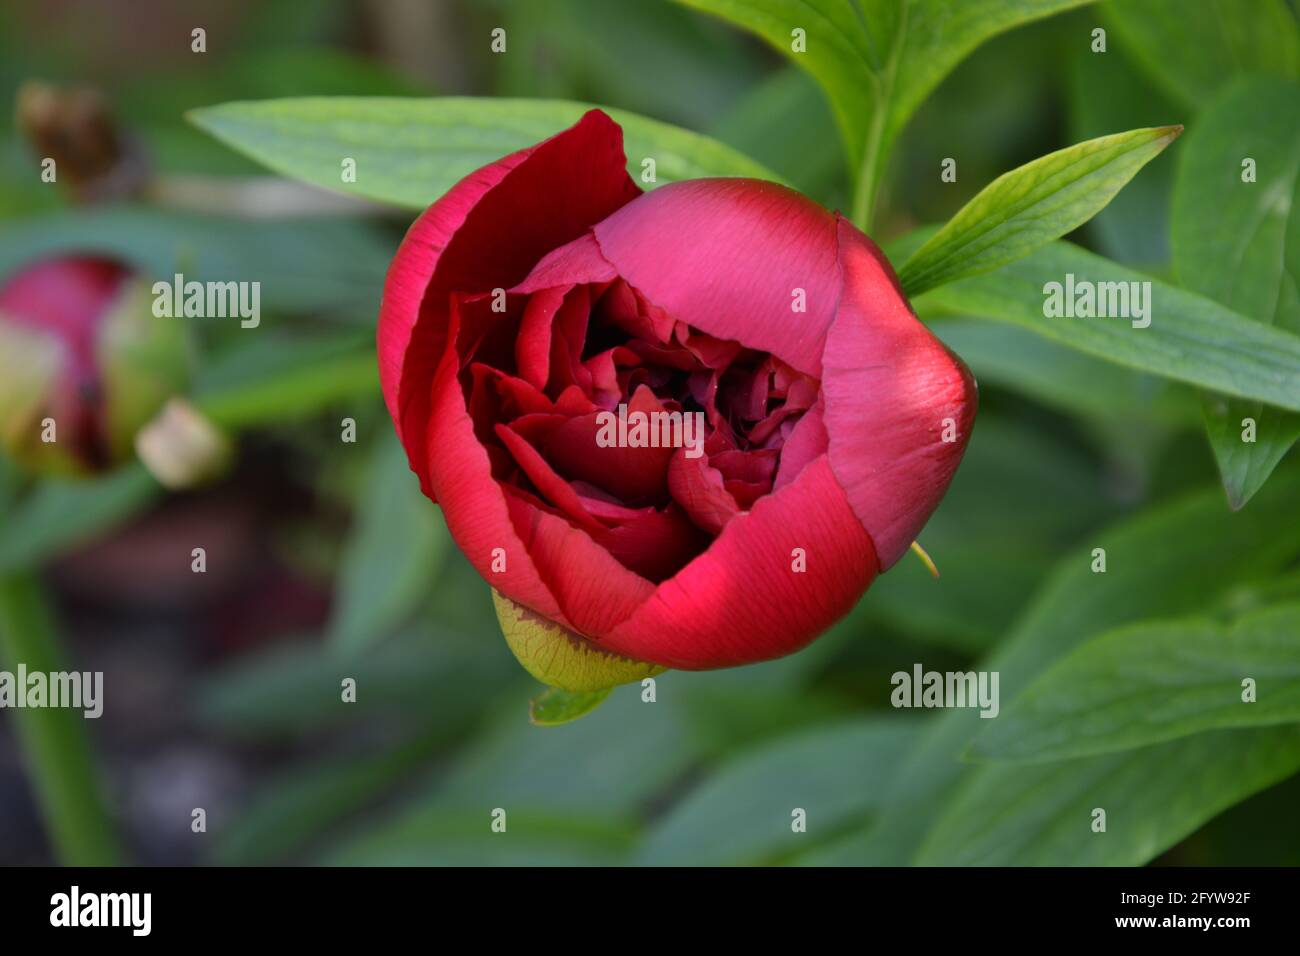 Paeonia Officinalis Rubra Plena, Old Garden Rose,  UK, Purely Beautiful and Peaceful Floral Space Stock Photo